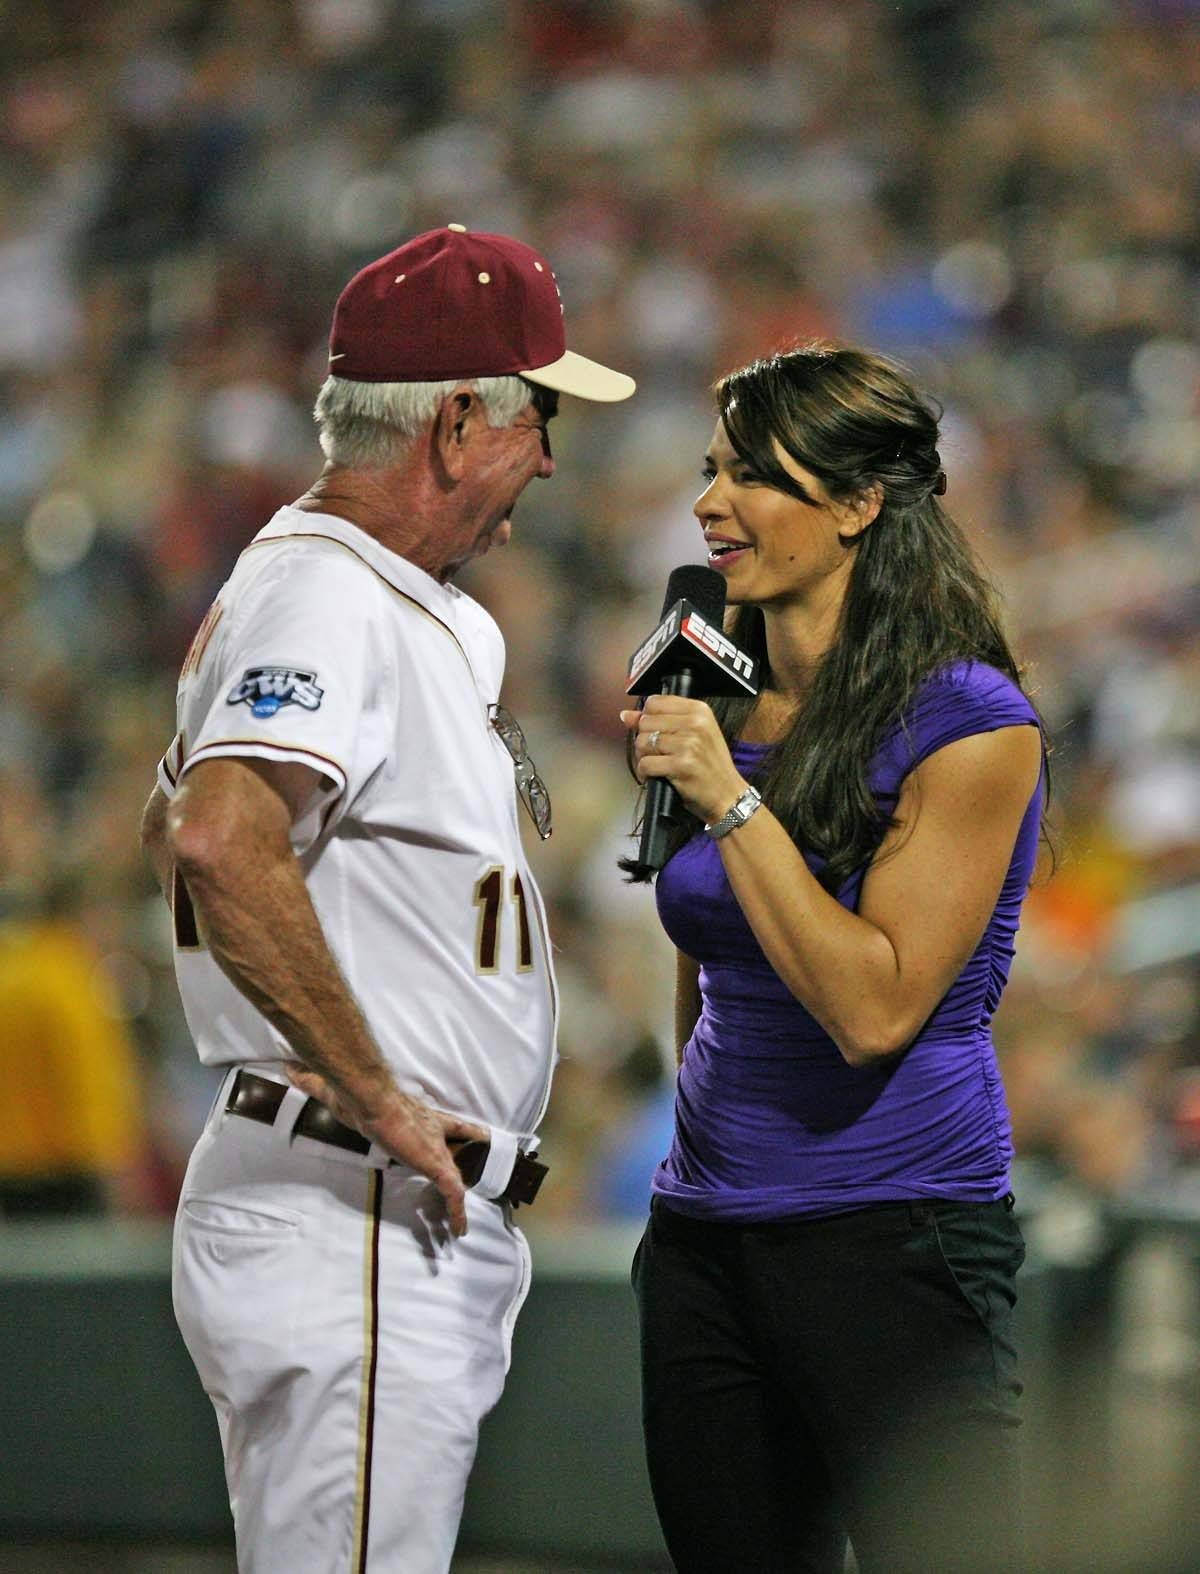 FSU head coach Mike Martin talks to Jessica Mendoza of ESPN before the top of the fifth inning.